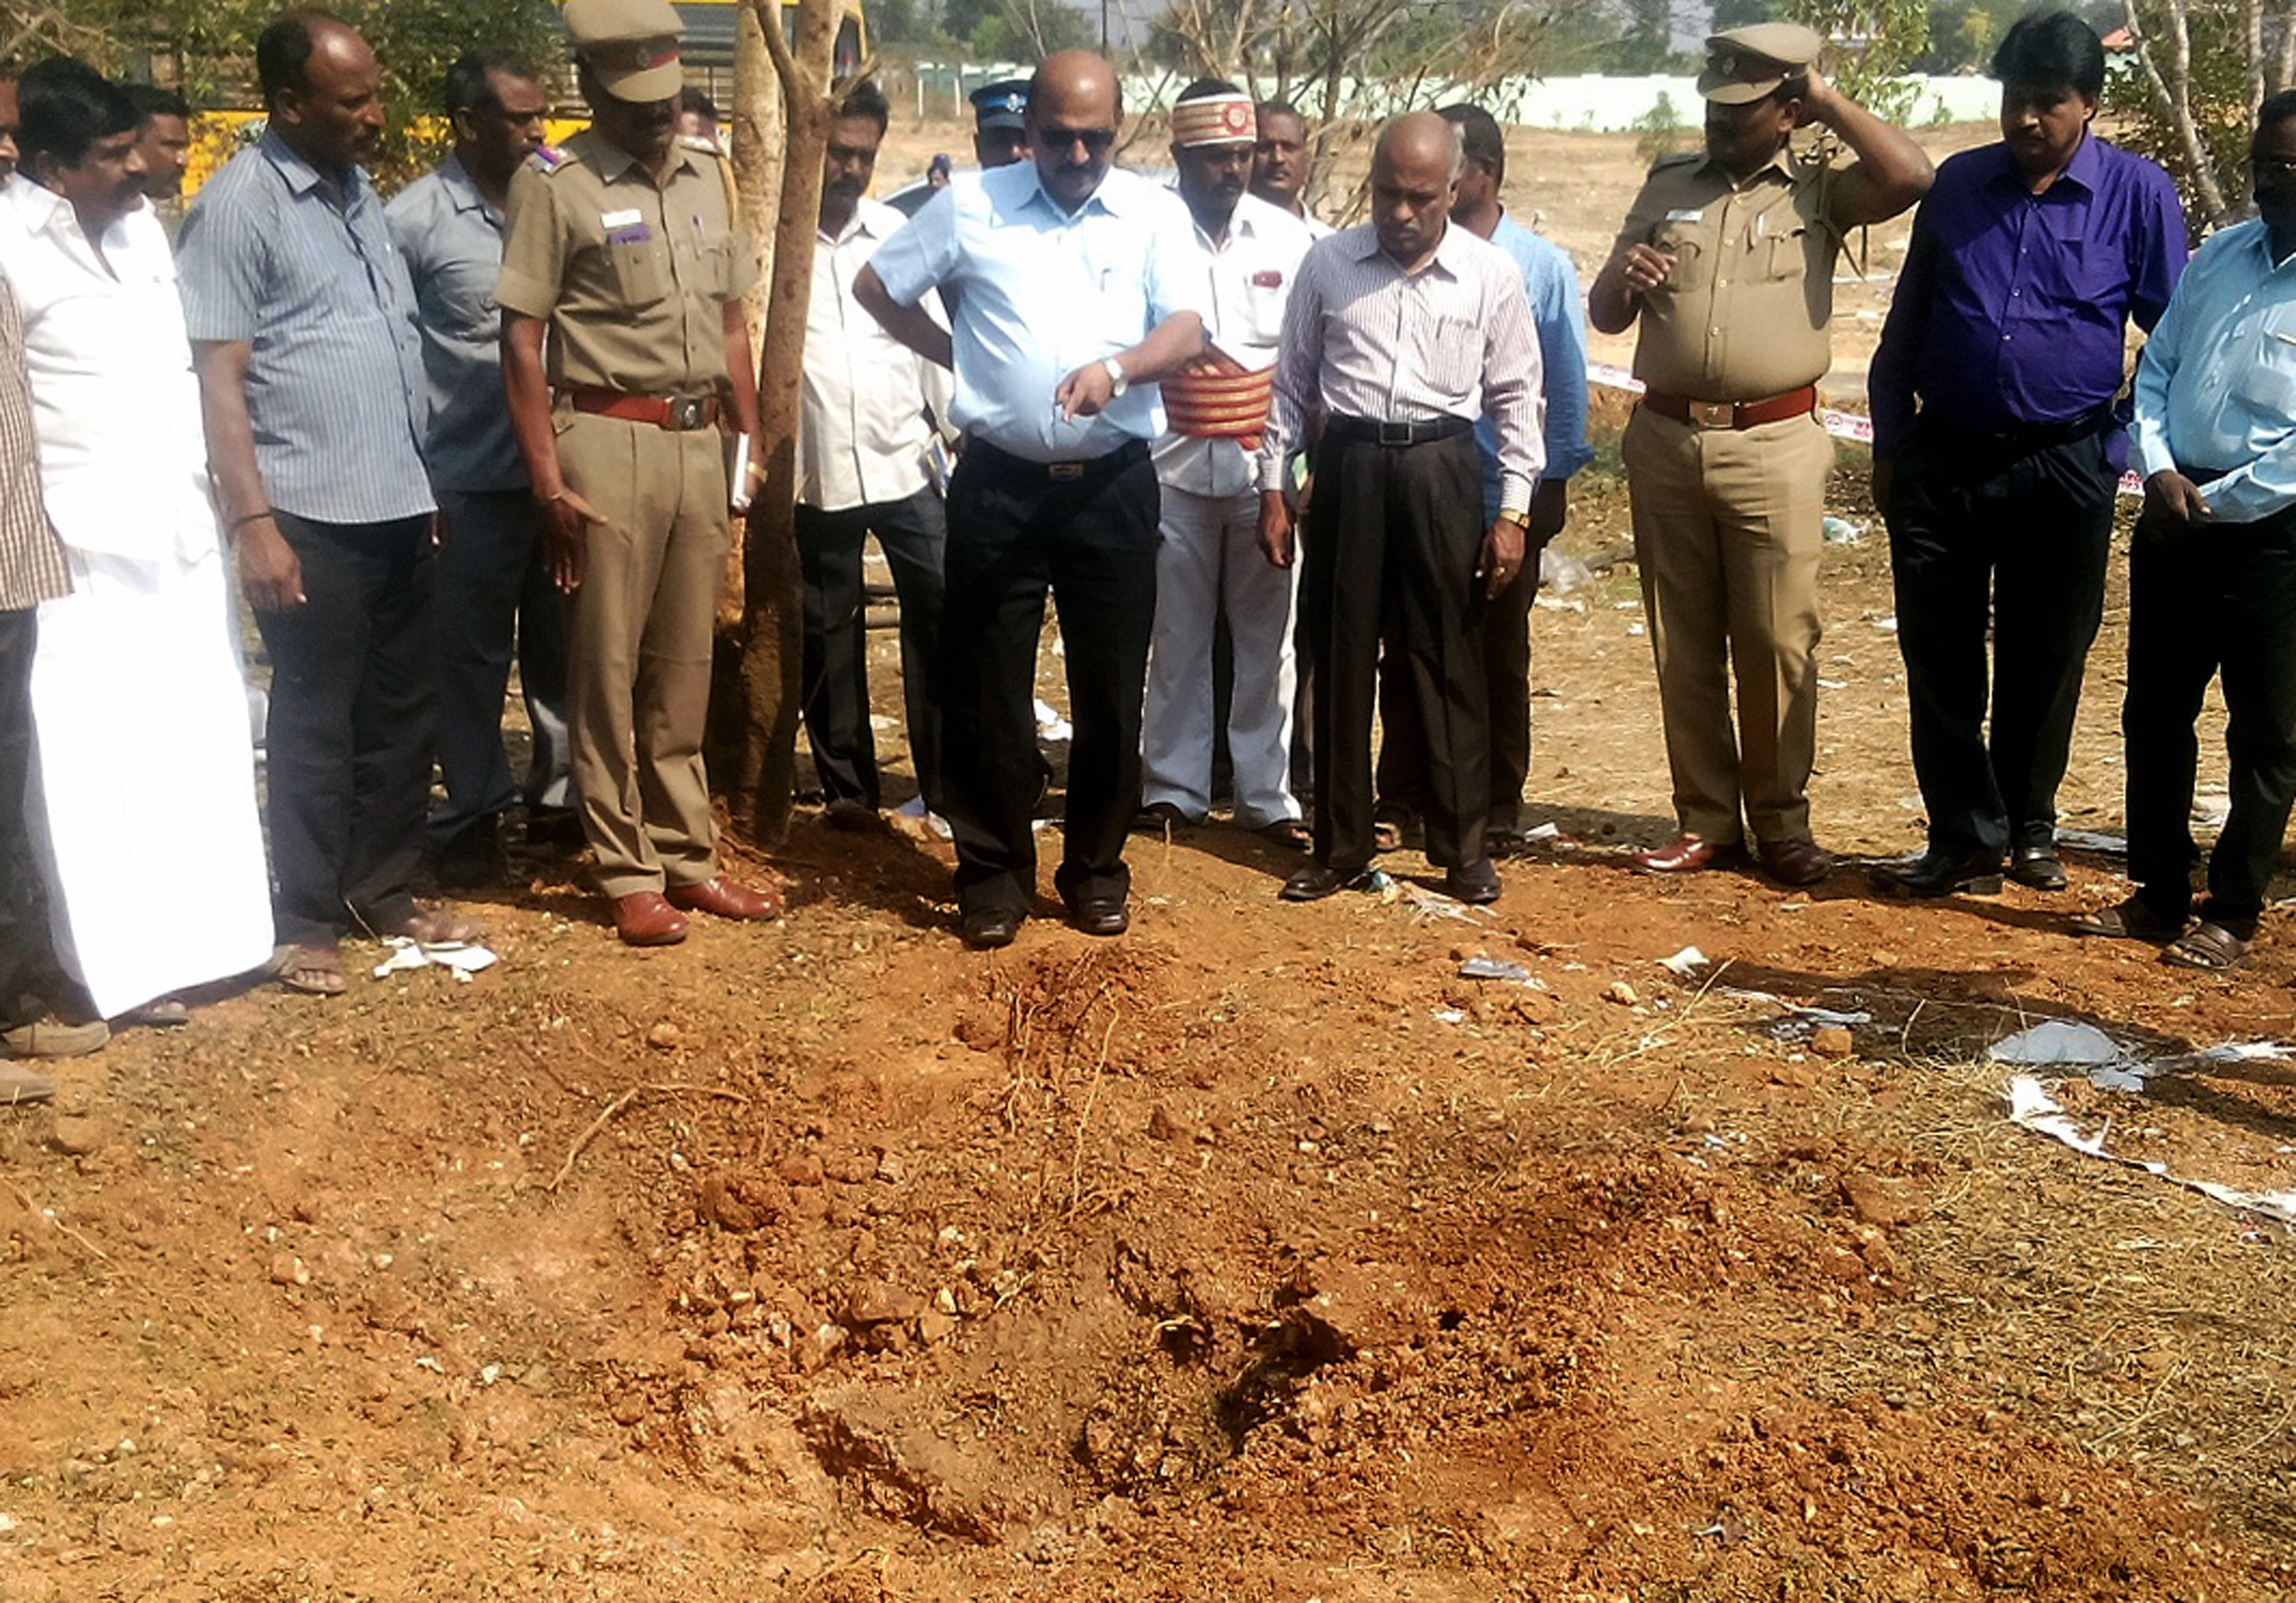 Indian authorities inspect the site of a suspected meteorite landing on Feb. 7, 2016 in Vellore district in southern Tamil Nadu state, on Feb. 6, 2016.